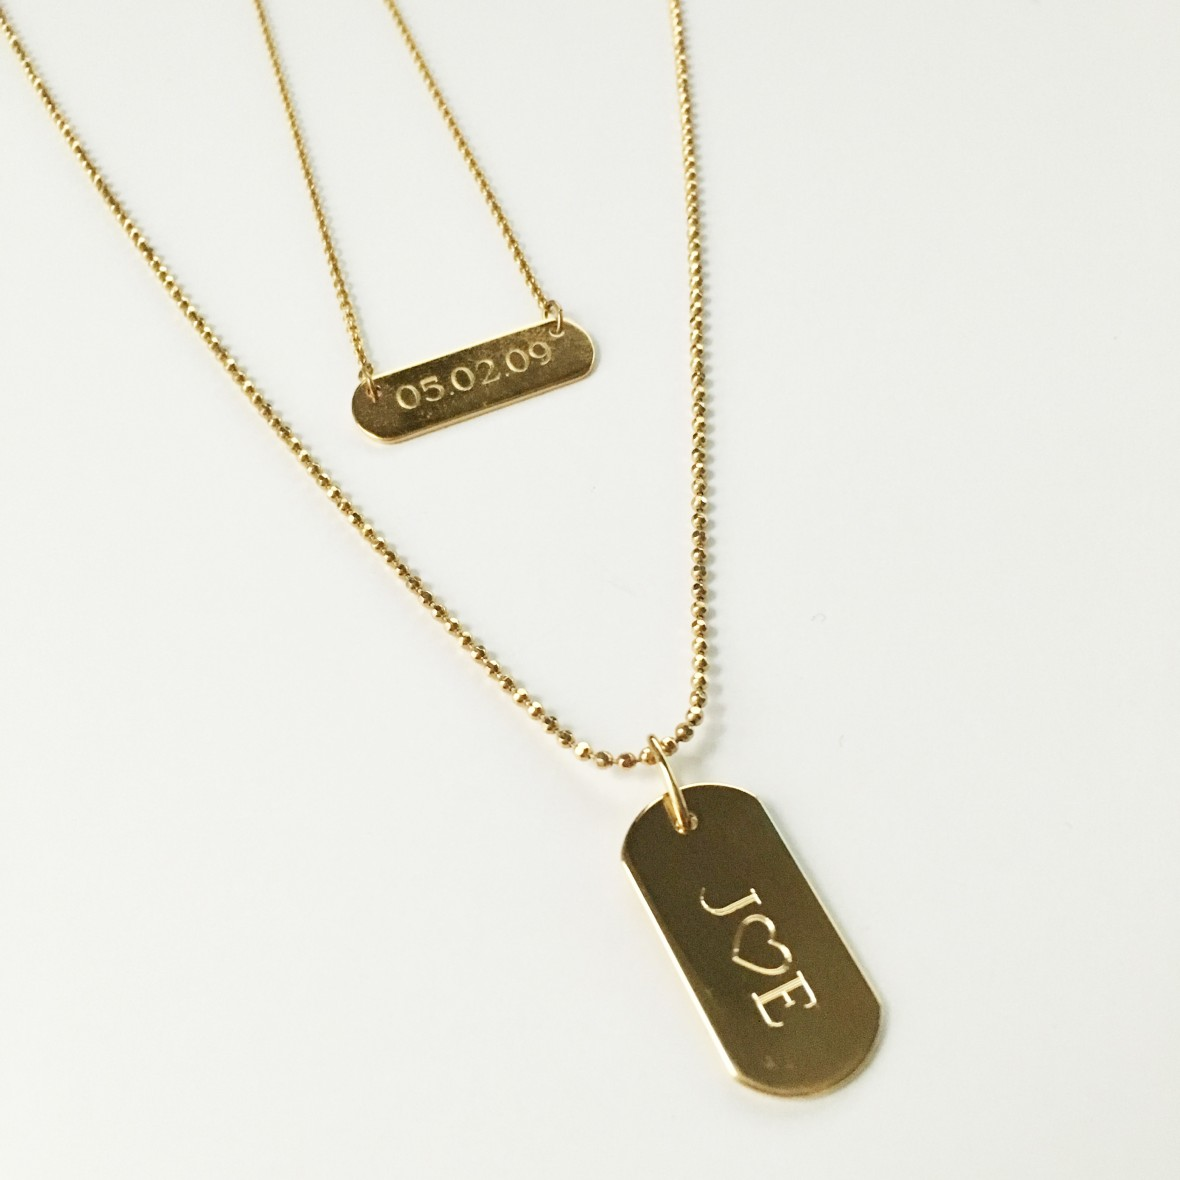 stella dot necklaces - perfect gifts for every girl on your list